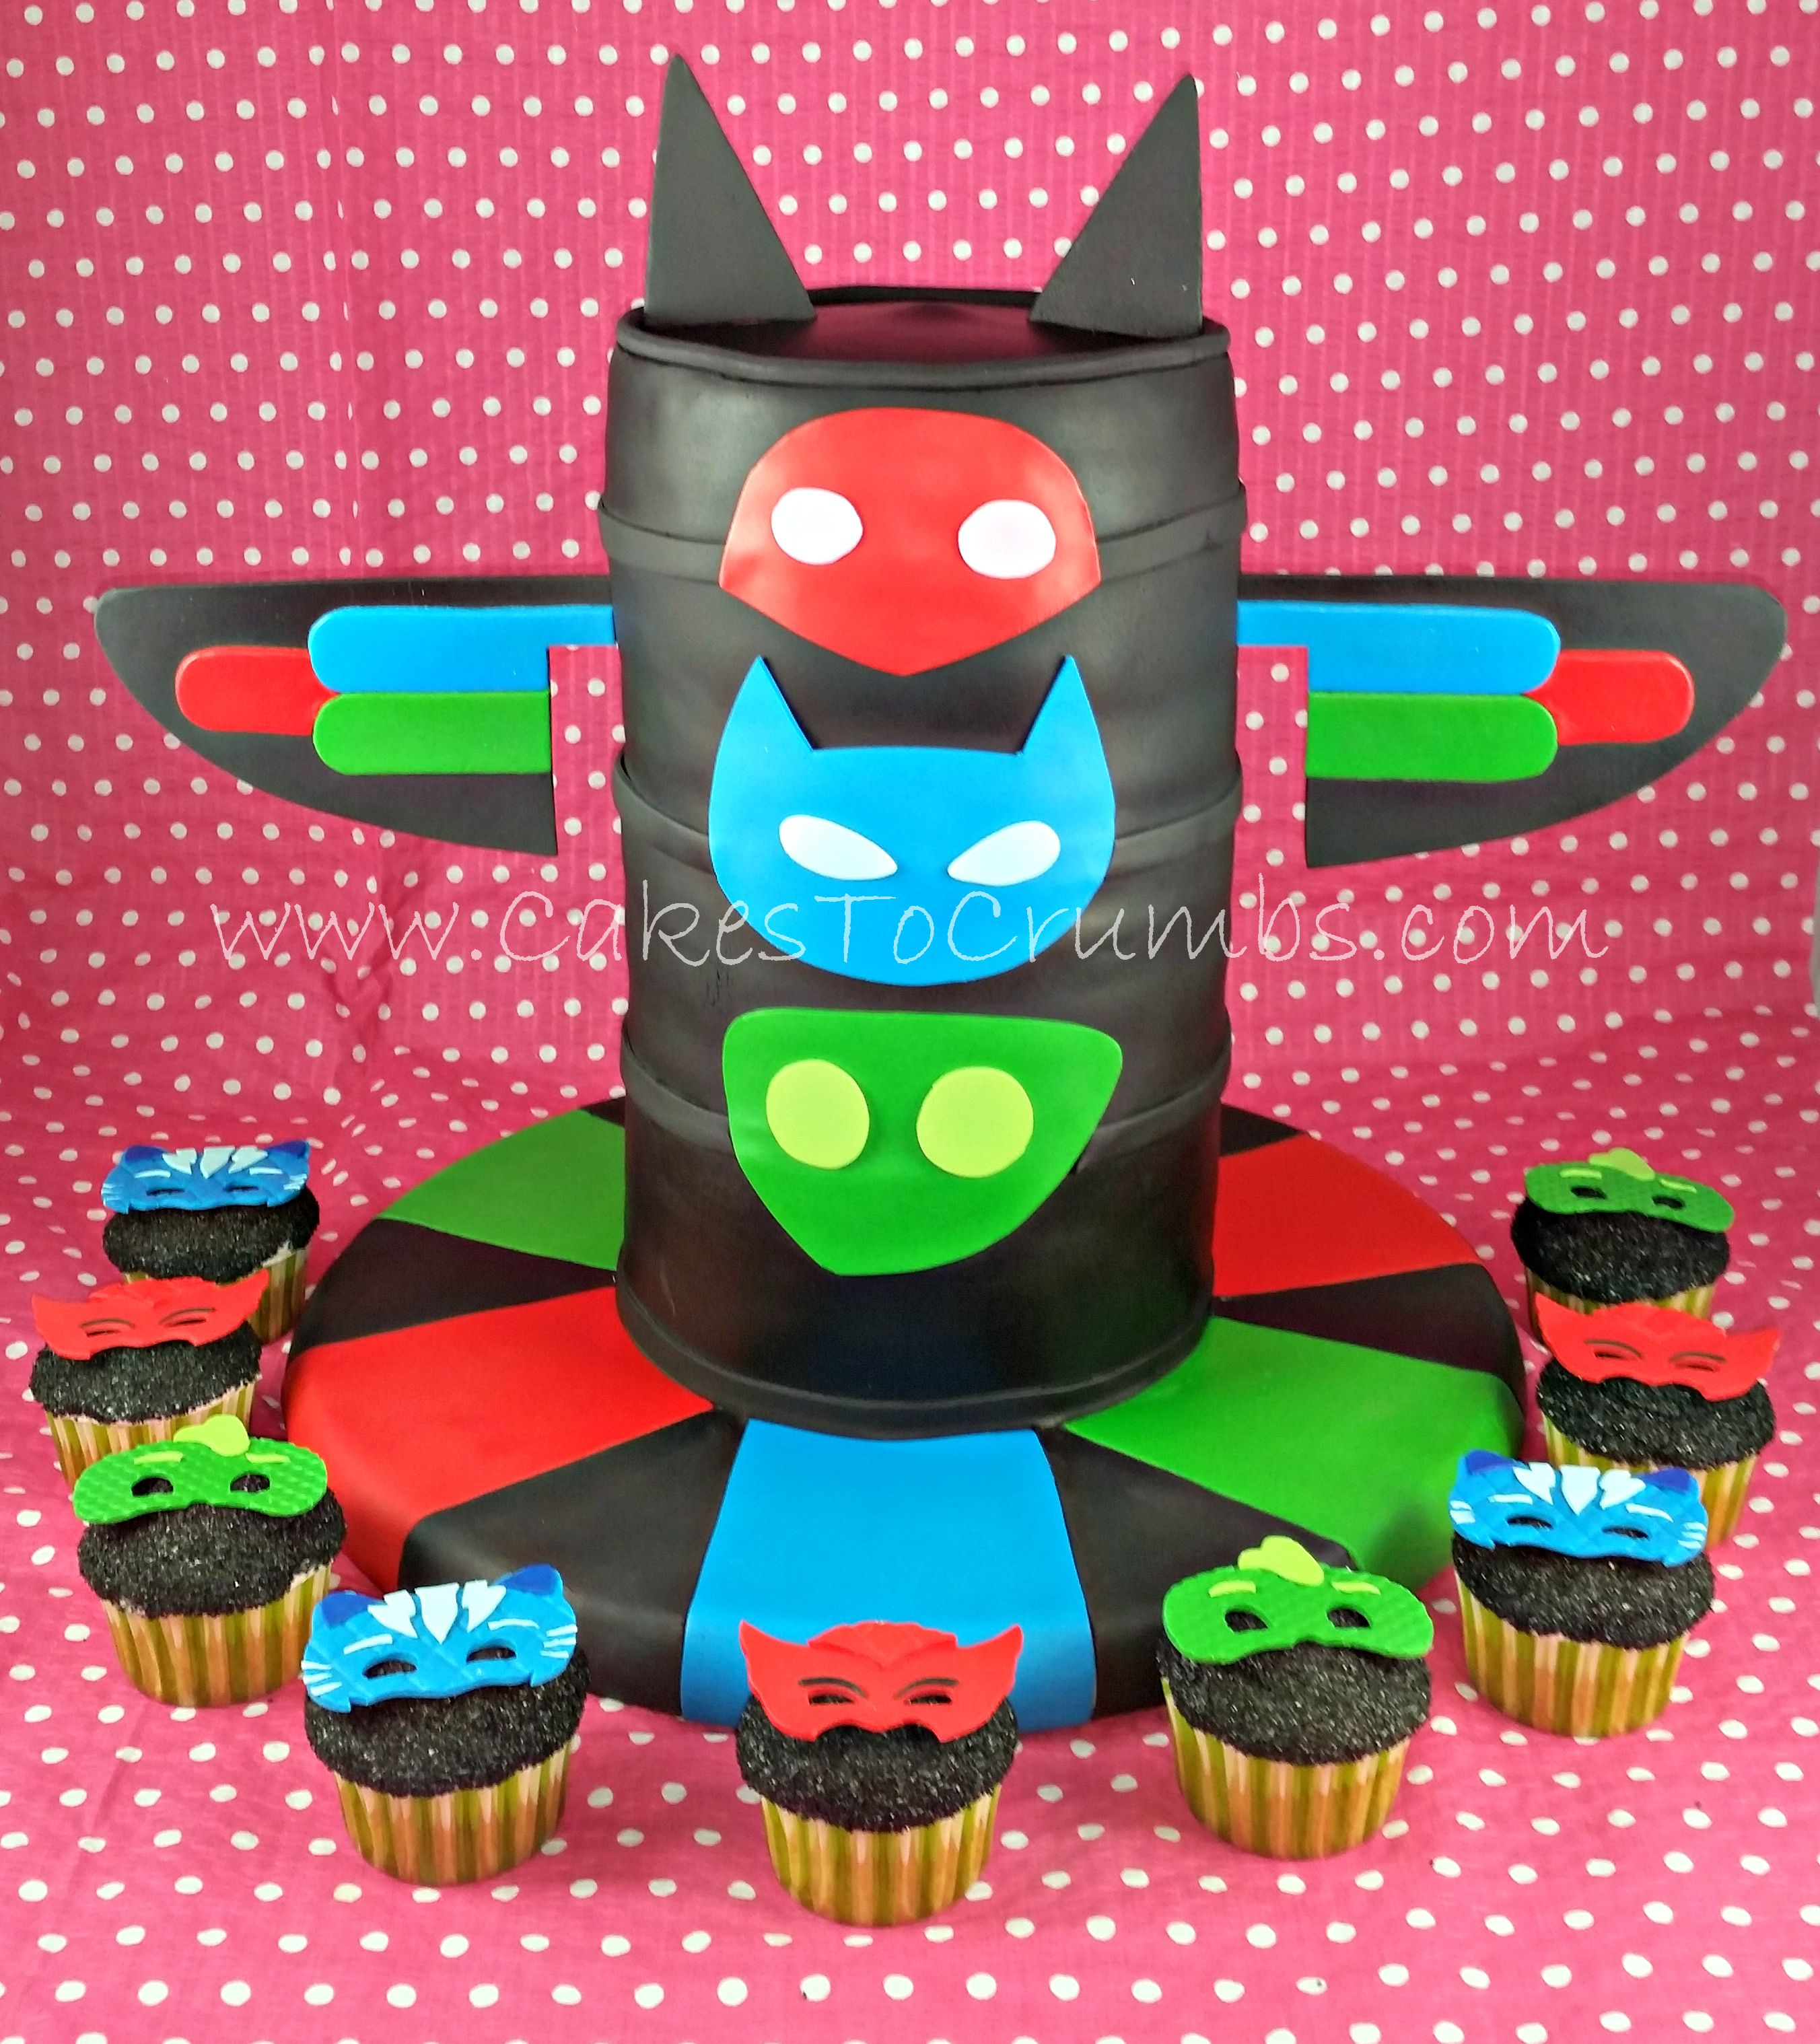 Pj Masks Tower Cake And Mask Cupcakes Cakes 2016 In 2019